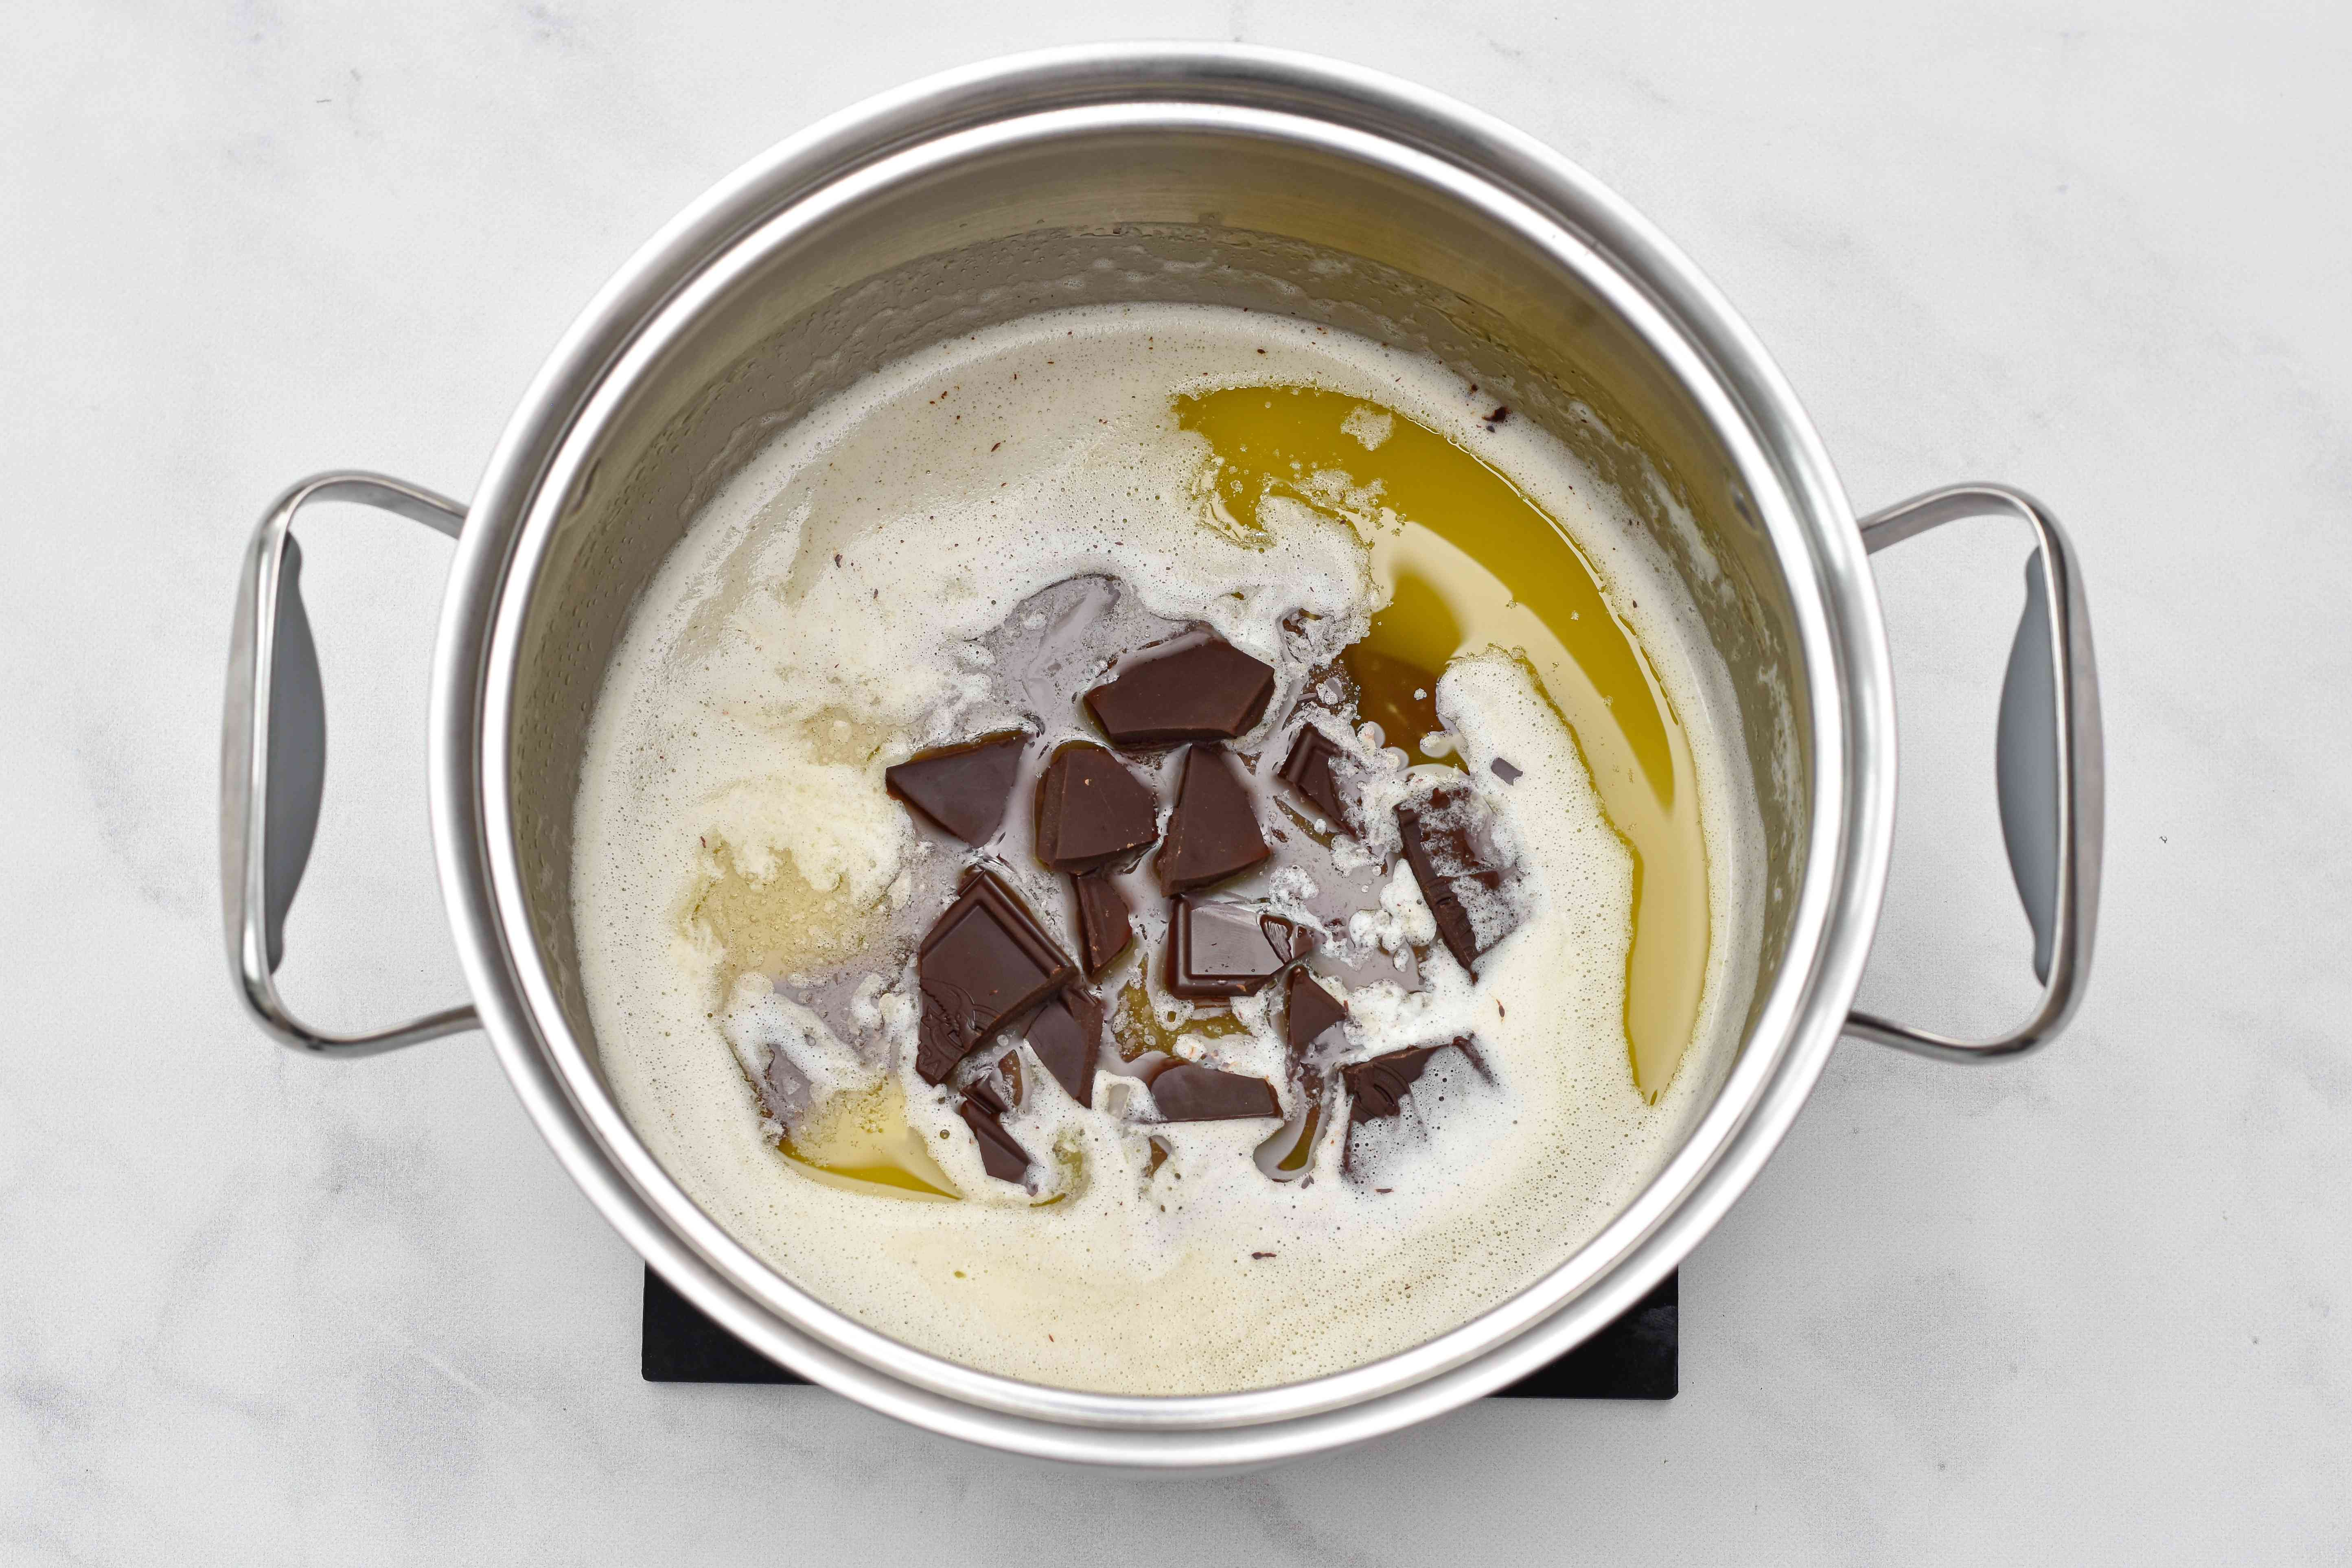 Butter and chocolate melting together to make Salted Caramel Brownies